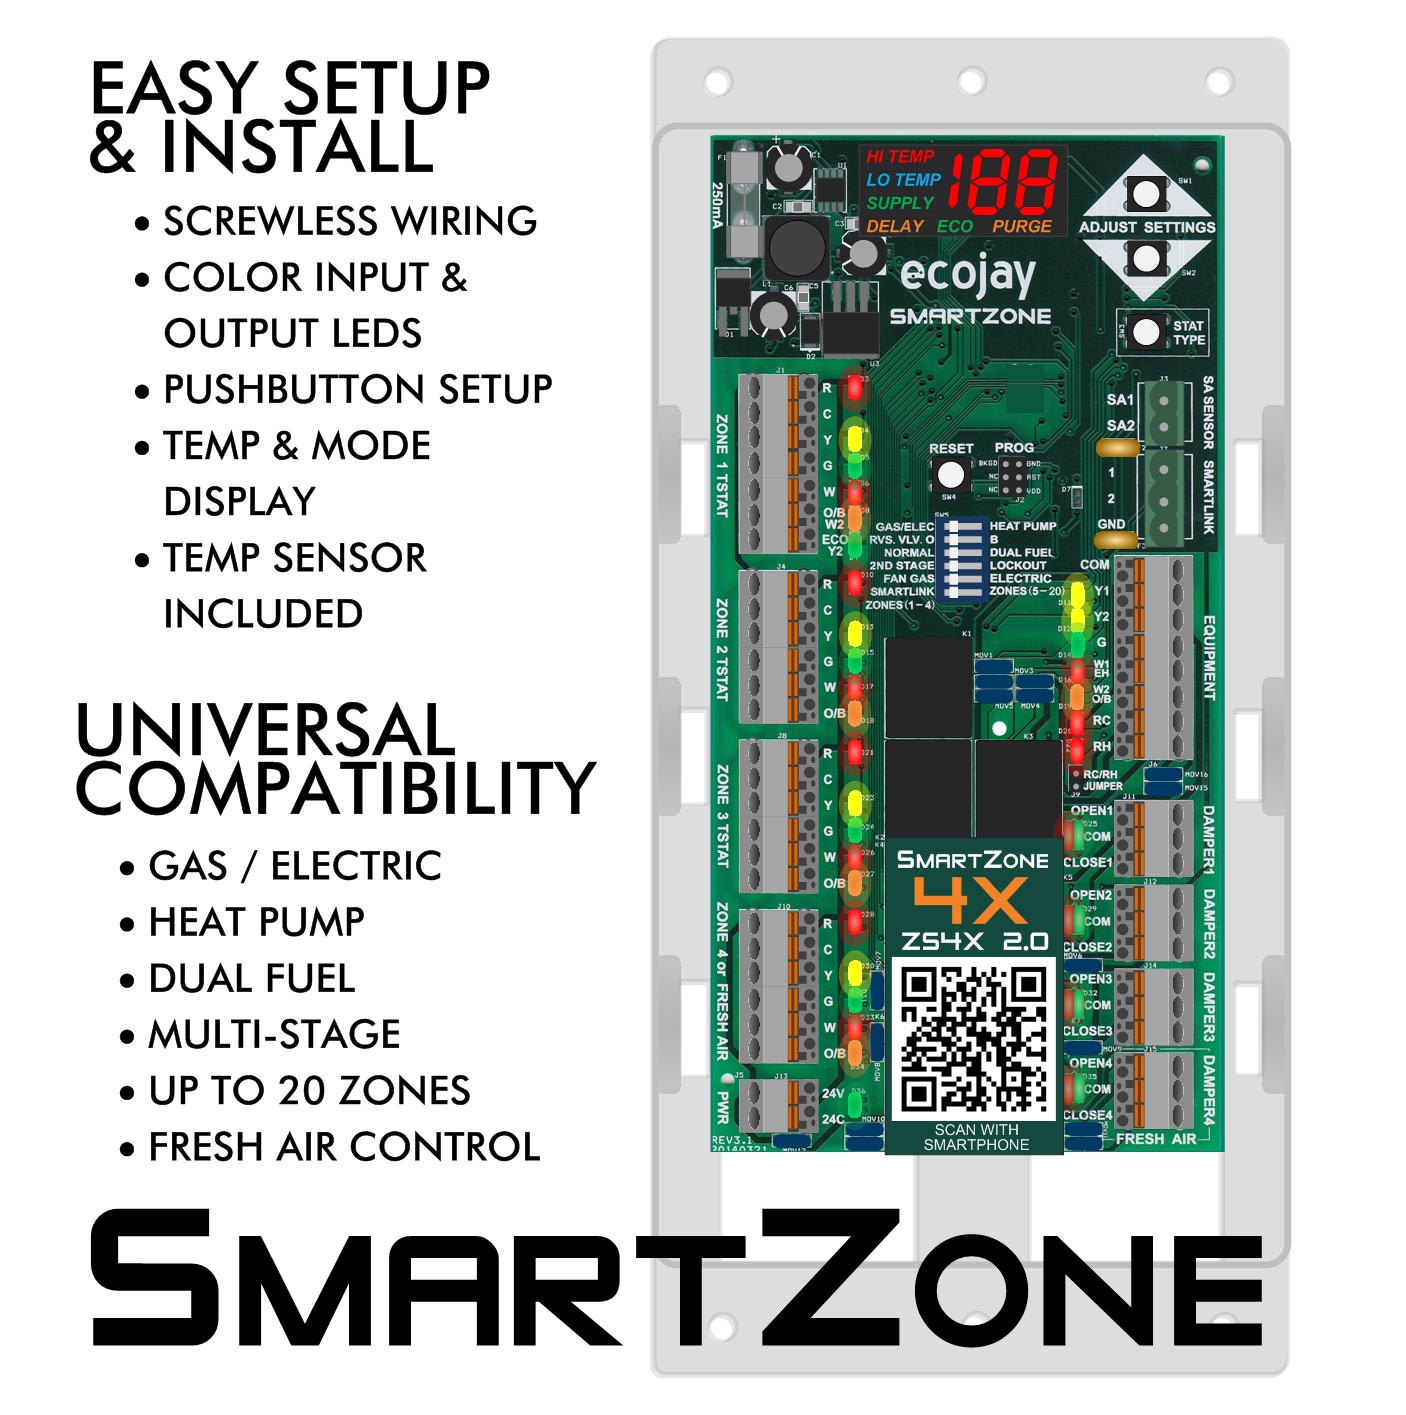 Ecojay SmartZone Features Simple